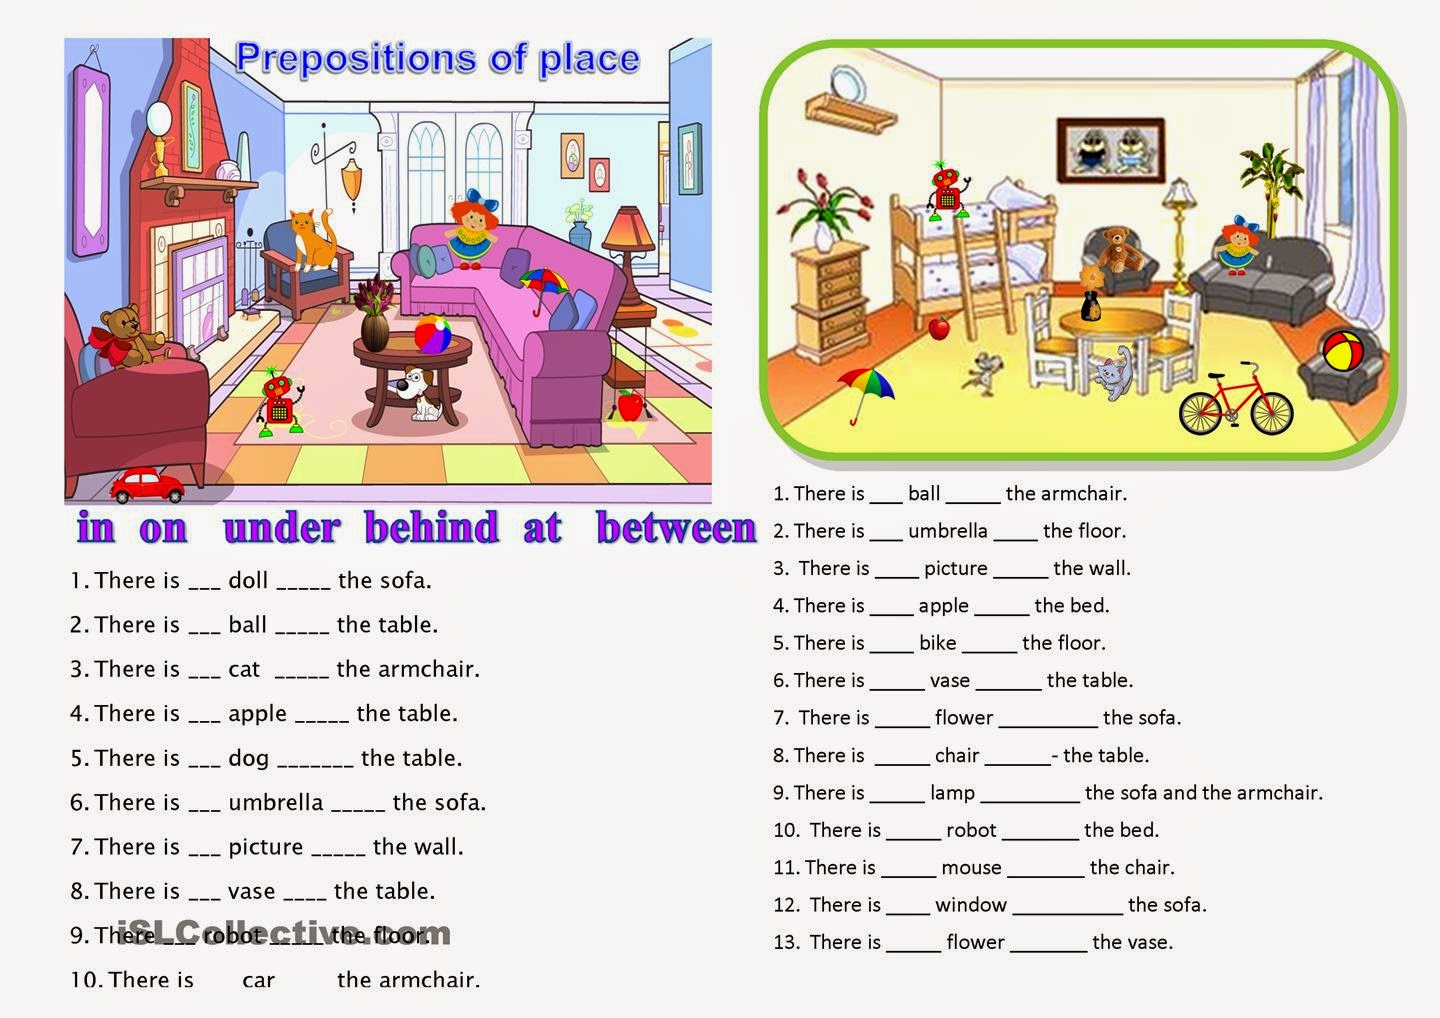 math worksheet : prepositions prepositions of place prepositions of ...